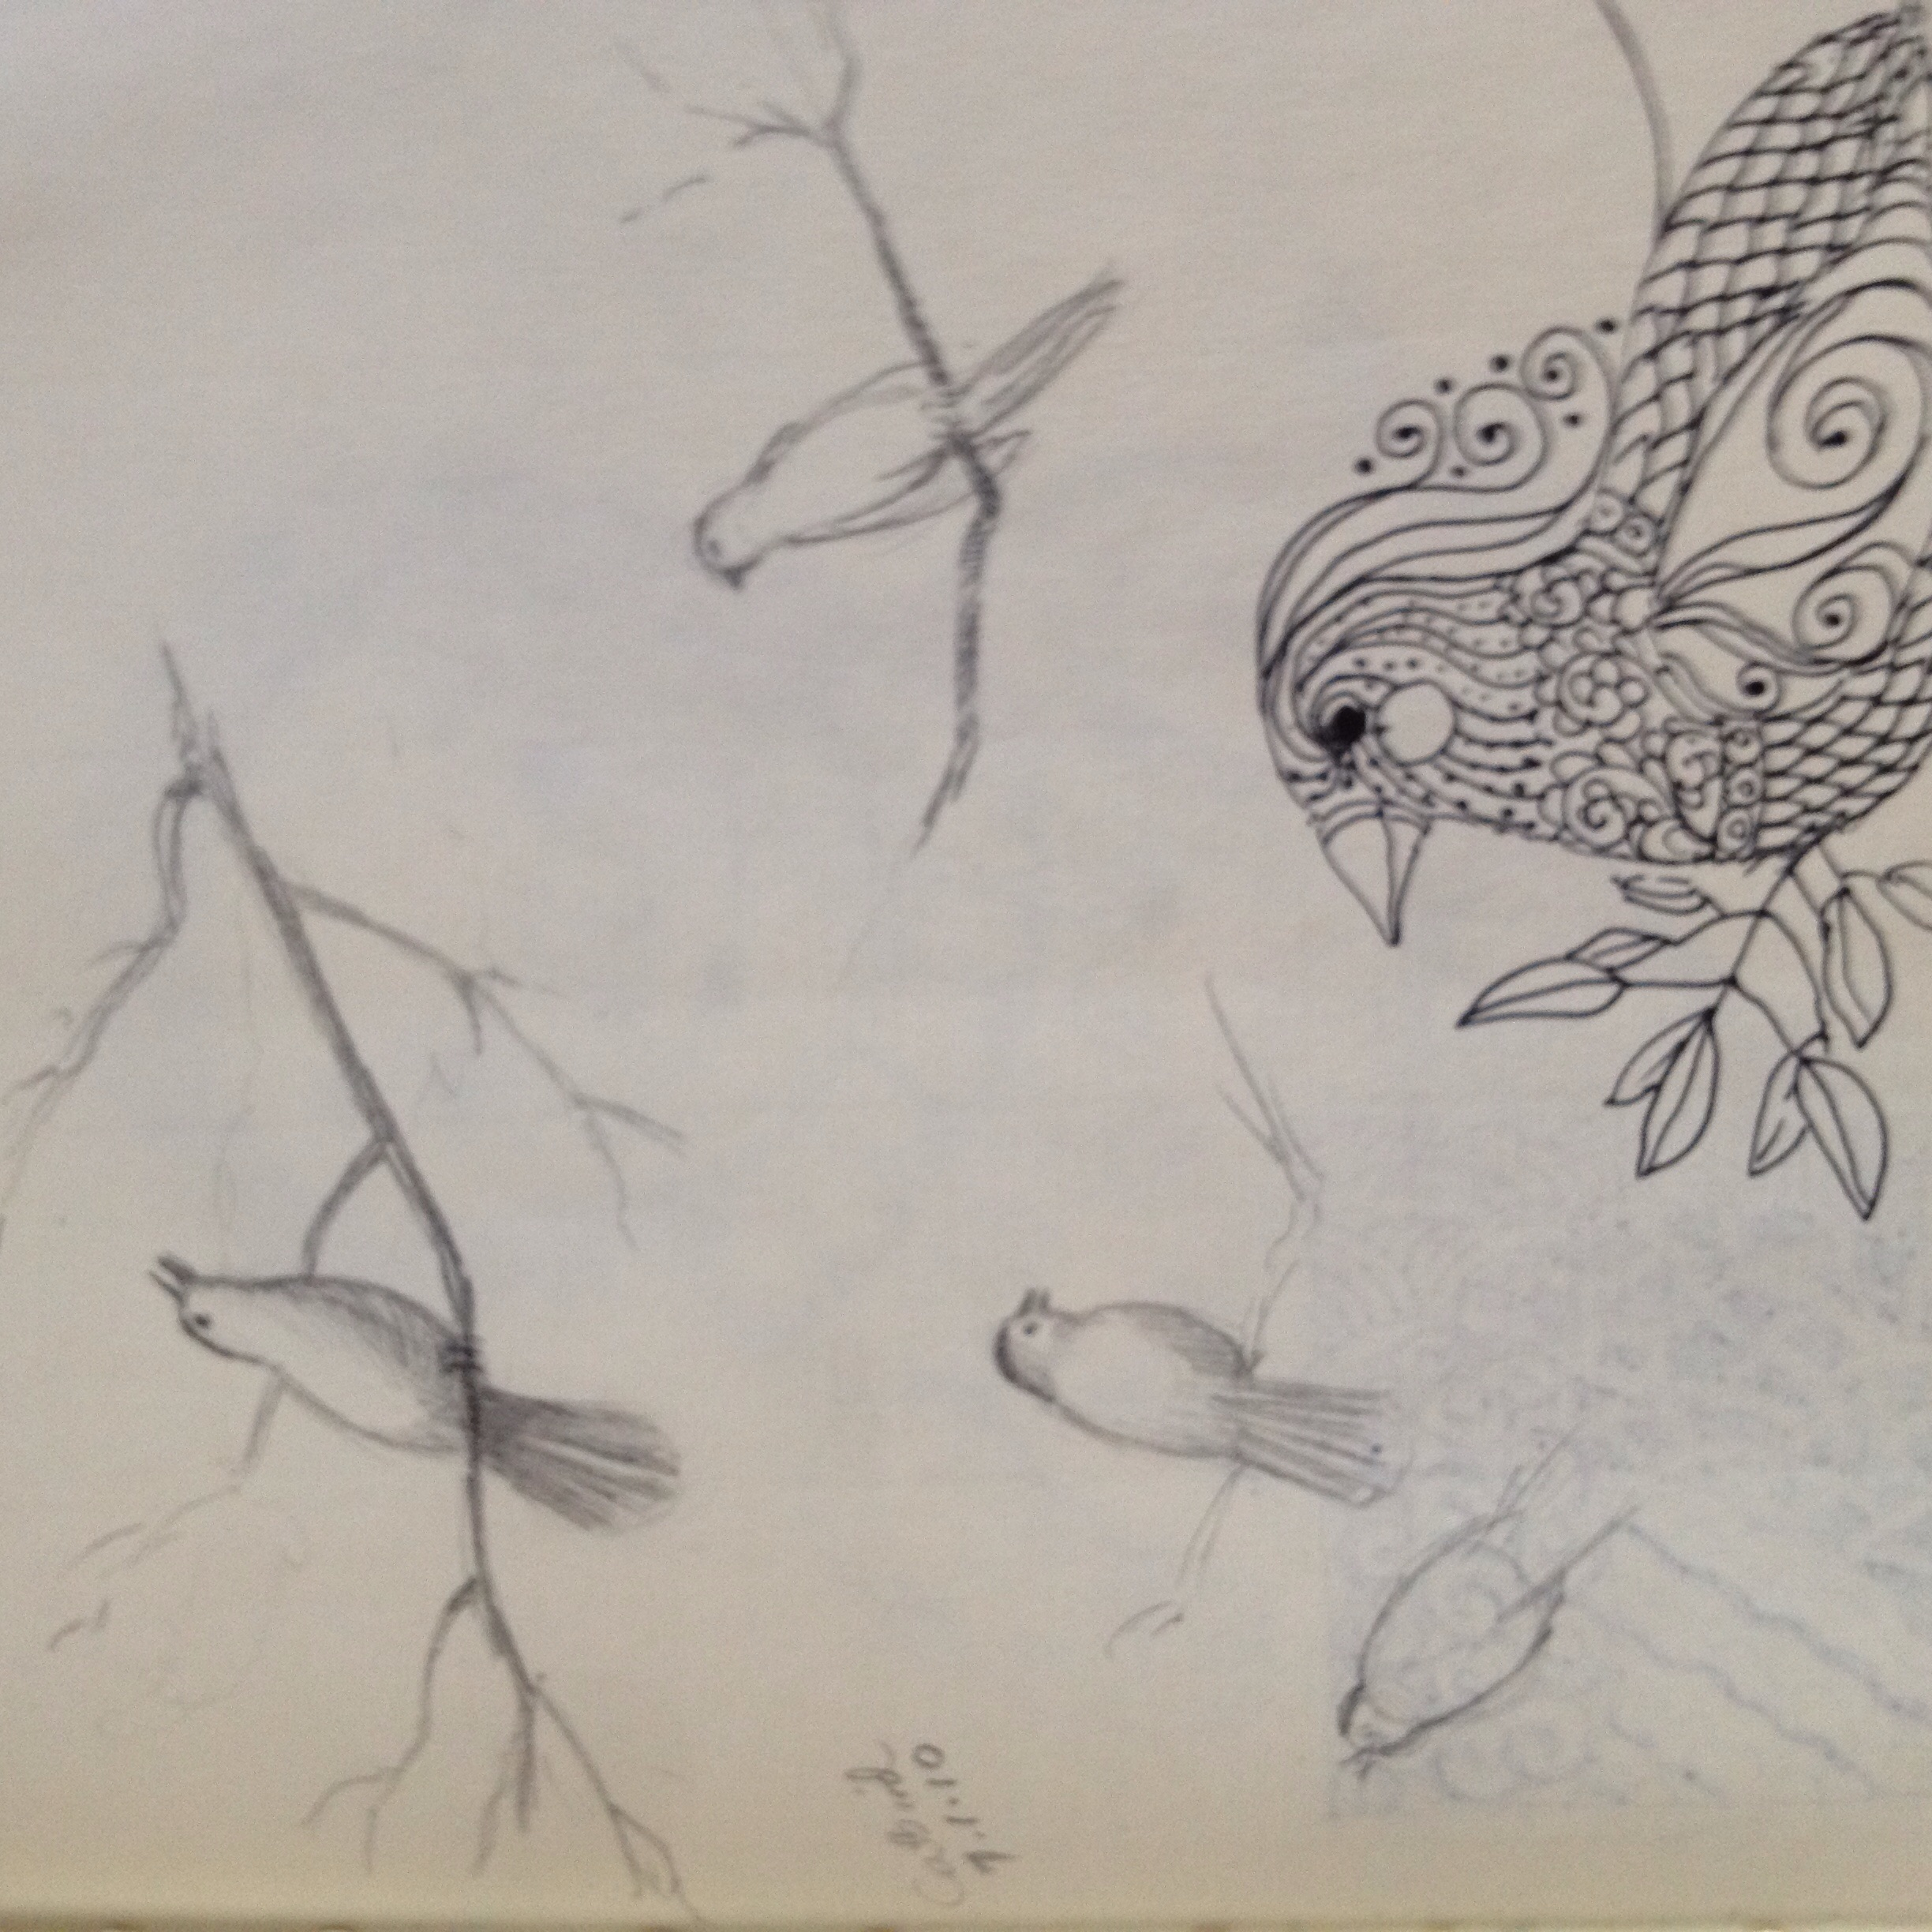 Bird sketches from life and imagination